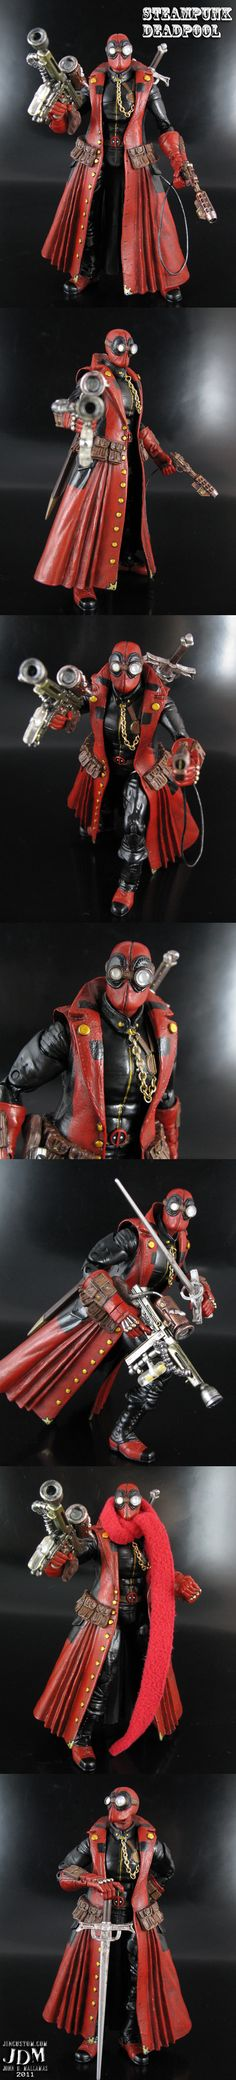 The Merc with a ray gun, Steampunk Deadpool by *Jin-Saotome on deviantART | Follow here http://pinterest.com/cakespinyoface/comics-comix-geekery/for even more Comic Book Geekery-- original art, mashups and more!